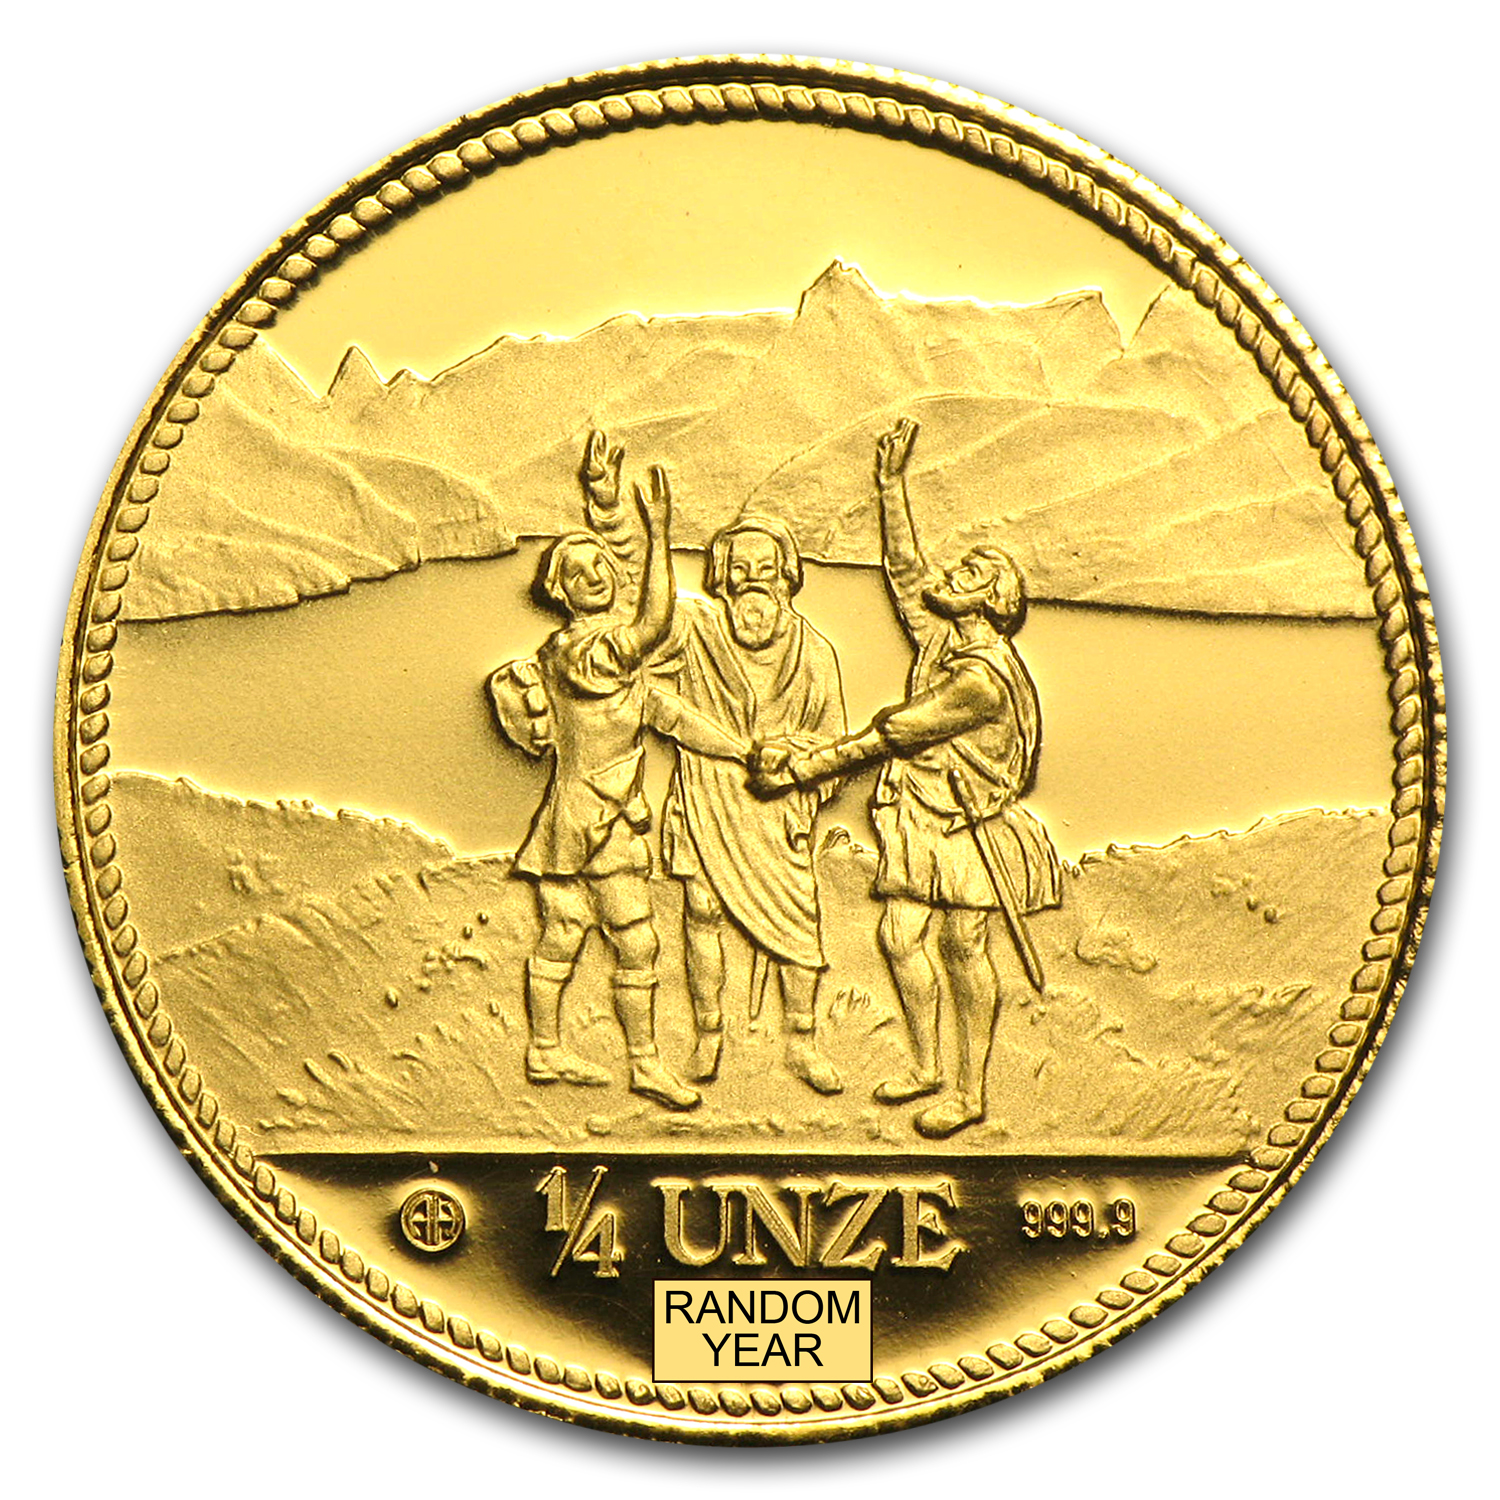 1986-1989 Switzerland 1/4 Unze Gold